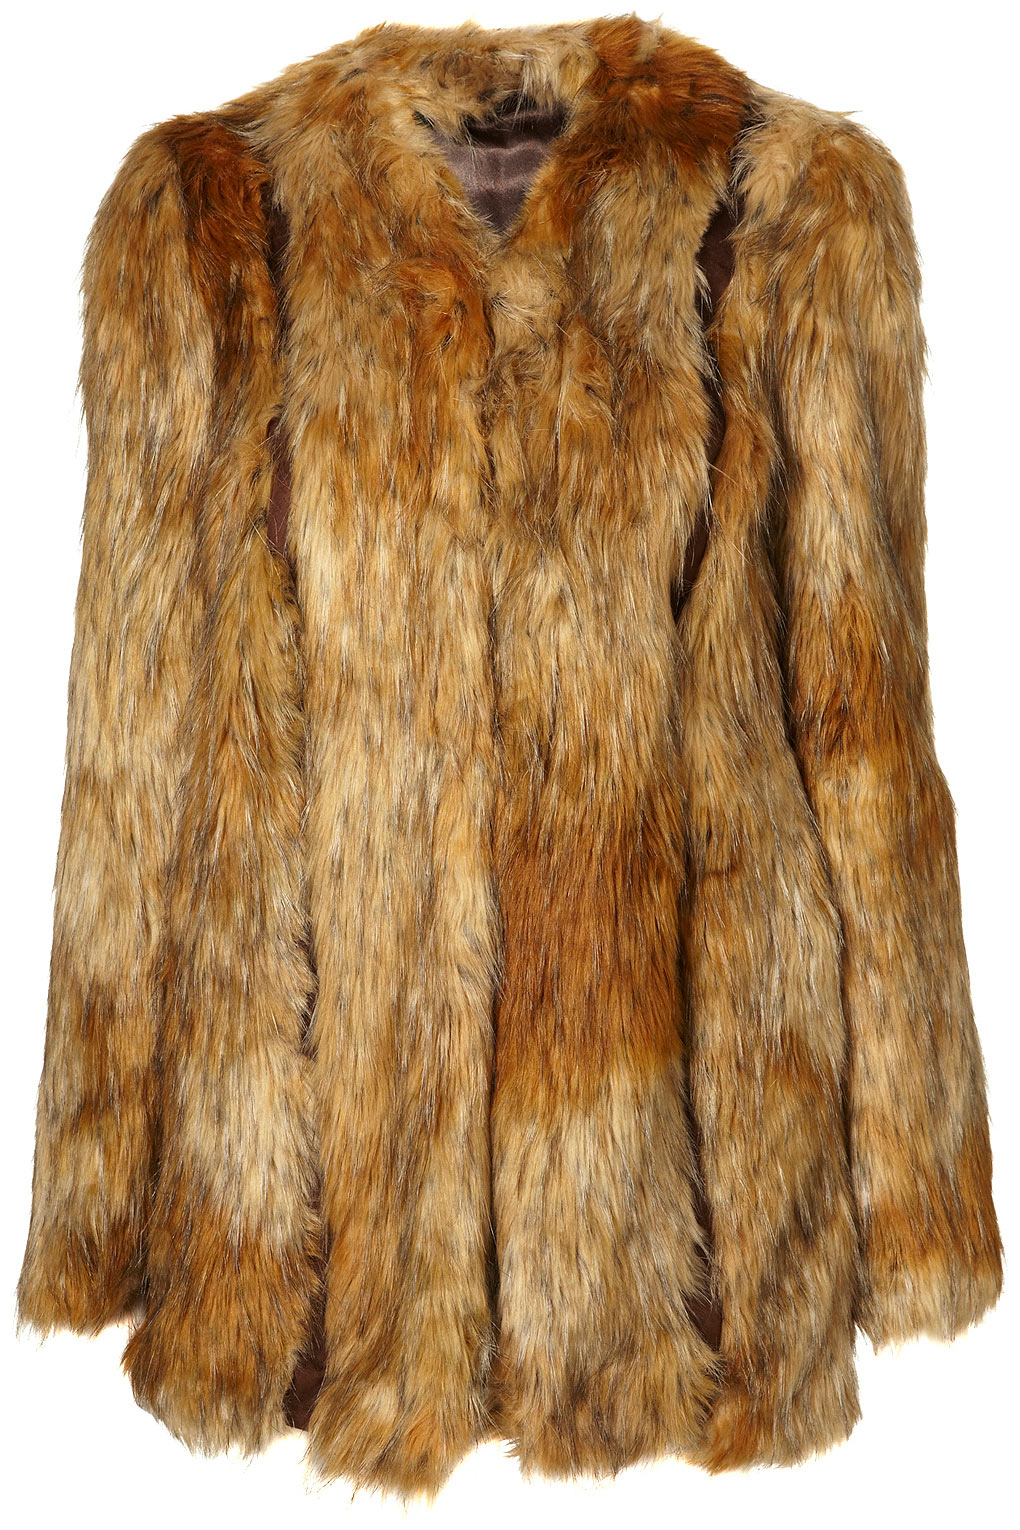 Fur coat - 06 photo